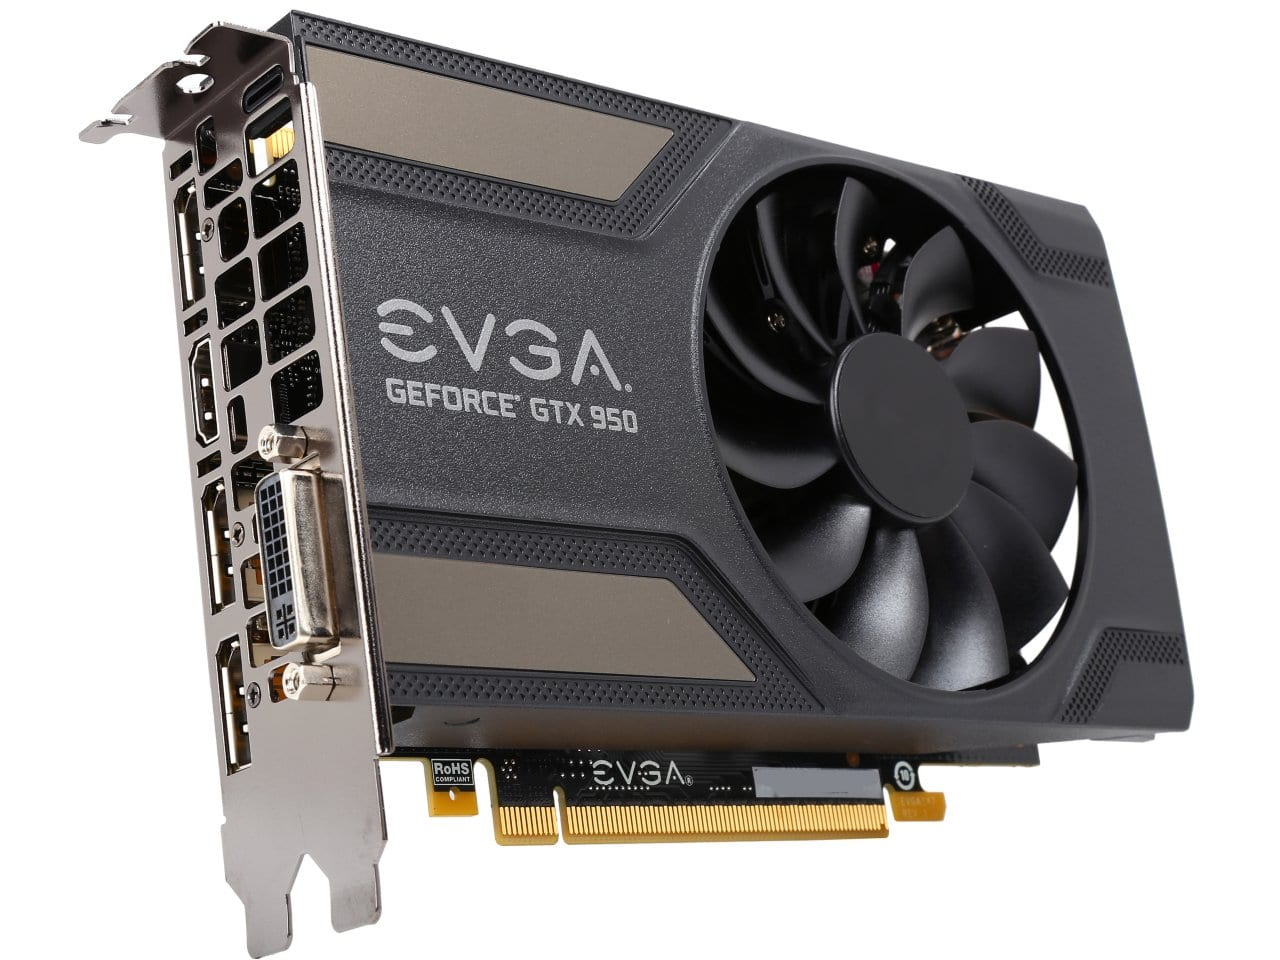 EVGA GeForce GTX 950 2 GB 128-Bit GDDR5 PCI Express 3.0 Silent Cooling Video Card (02G-P4-2951-KR) for $99.99 AR + Free Shipping @ Newegg.com